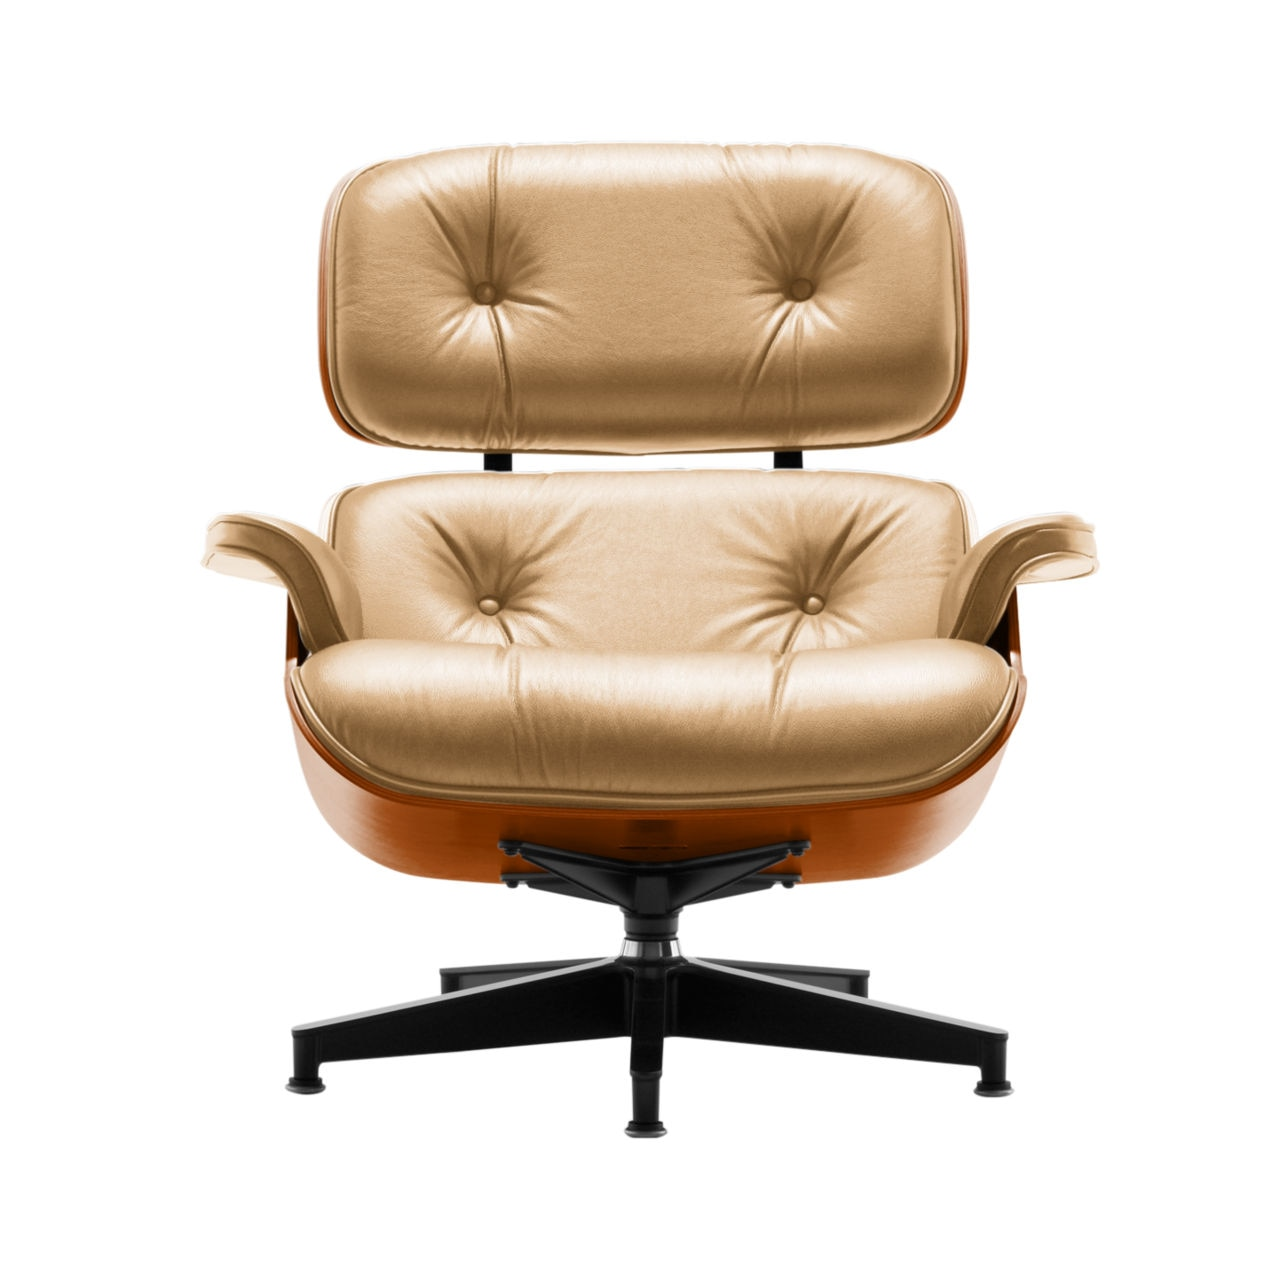 Eames Lounge Chair in Rattan Leather by Herman Miller